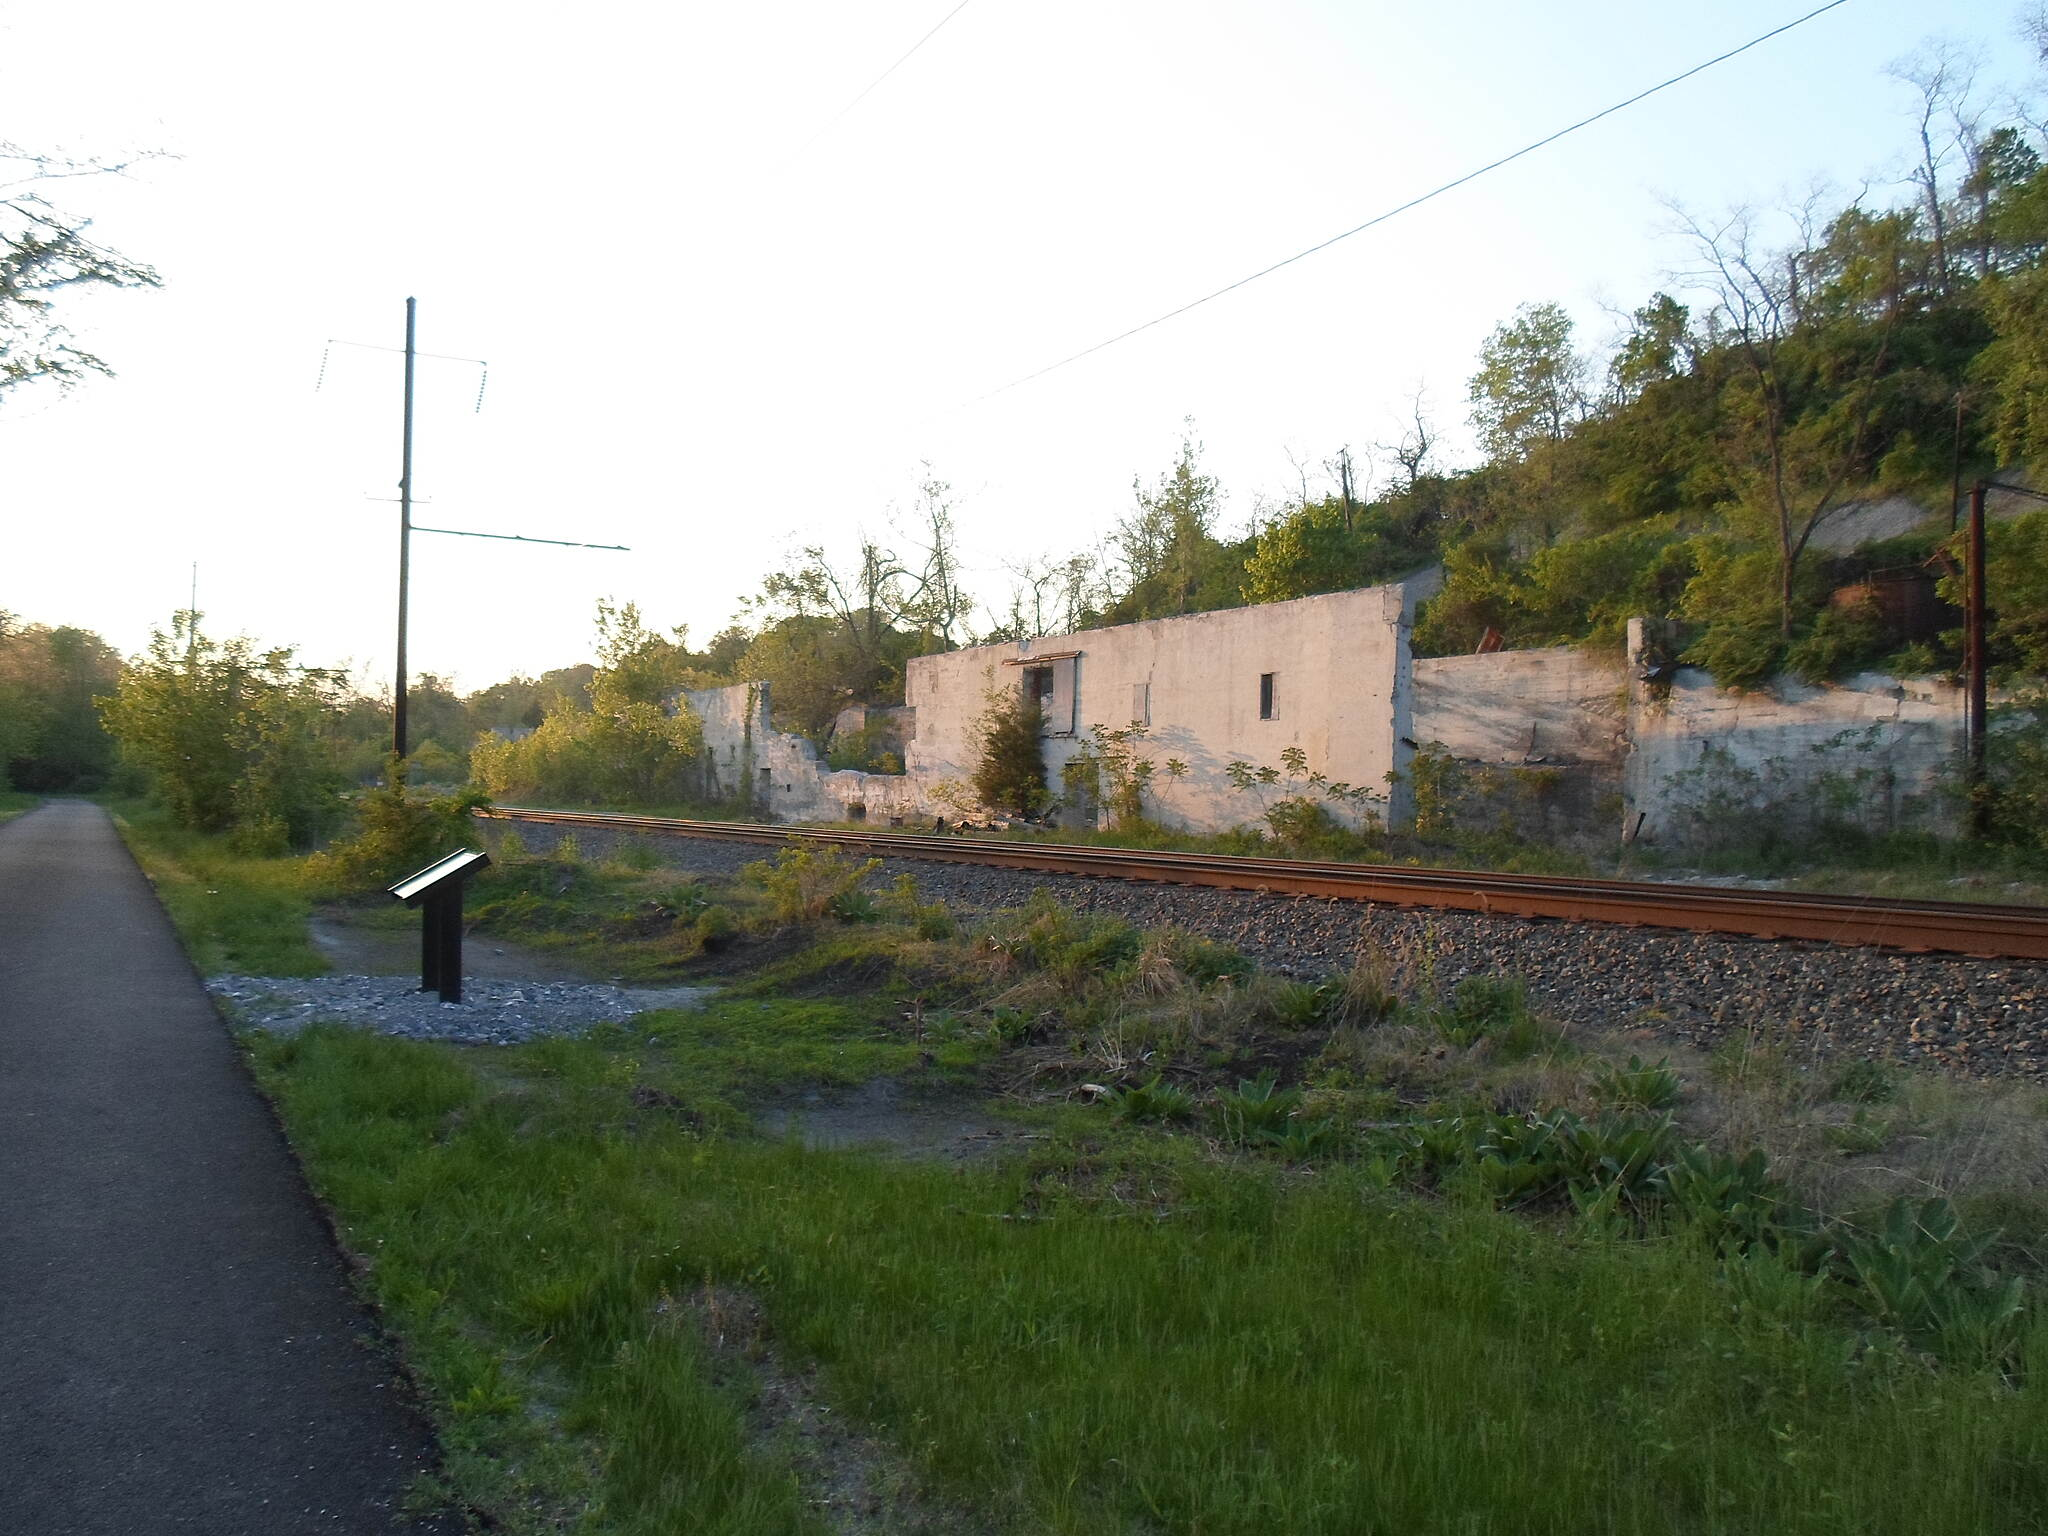 Northwest Lancaster County River Trail Northwest River Trail Looking north along the trail in southern Conoy Twp. The rail line and ruins of the old quarry operations can be seen to the right. Taken May 2015.